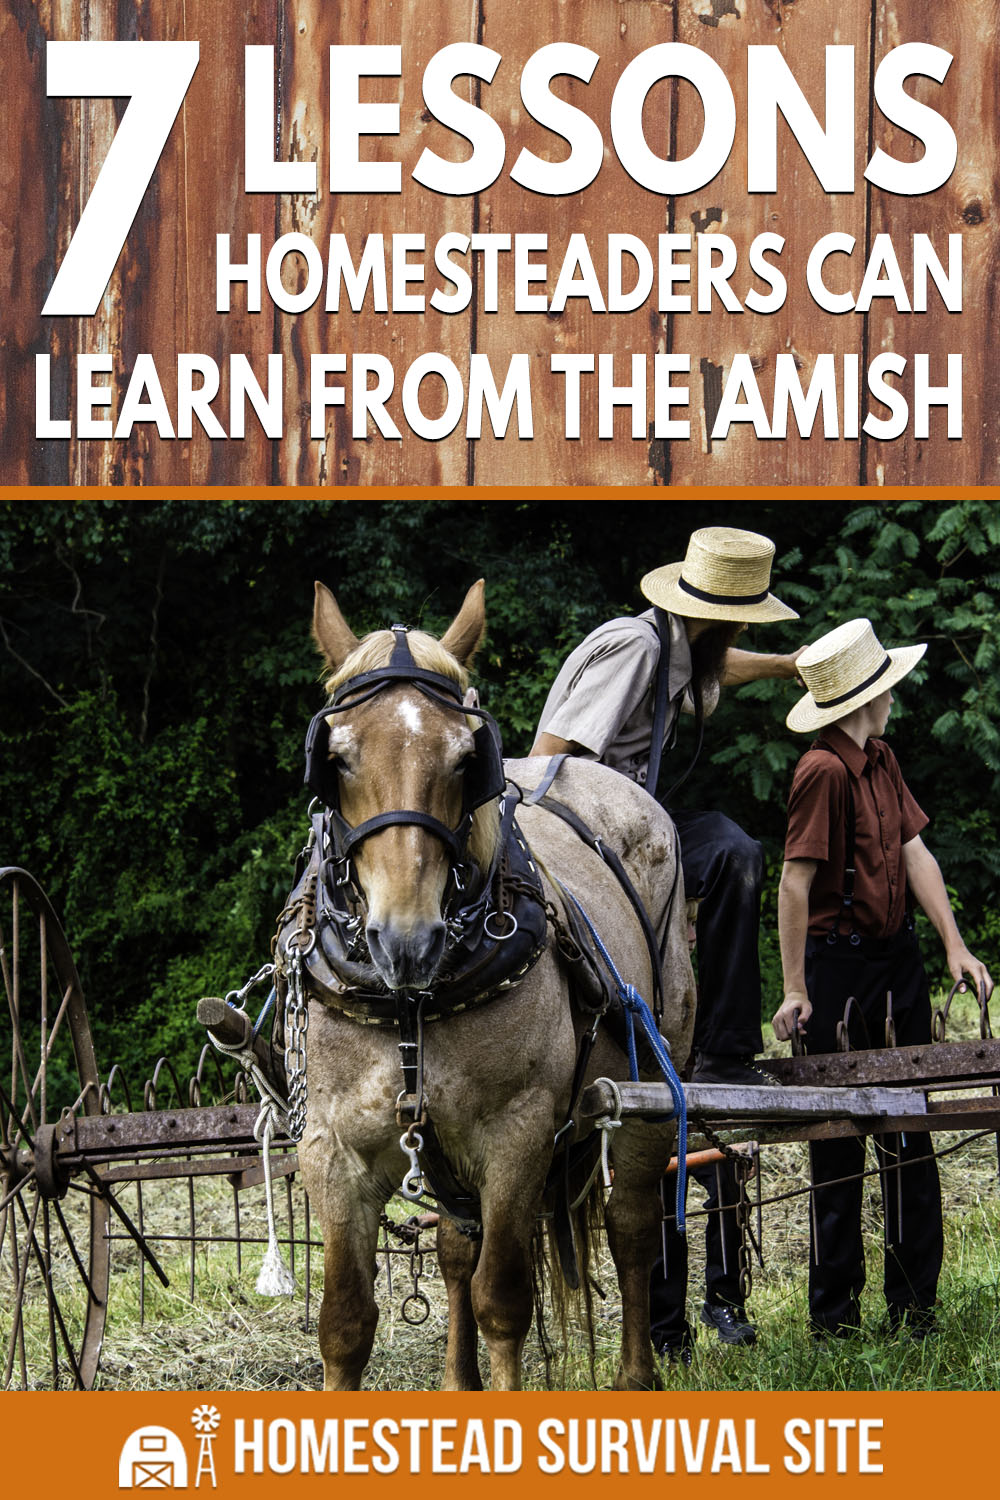 7 Lessons Homesteaders Can Learn From The Amish